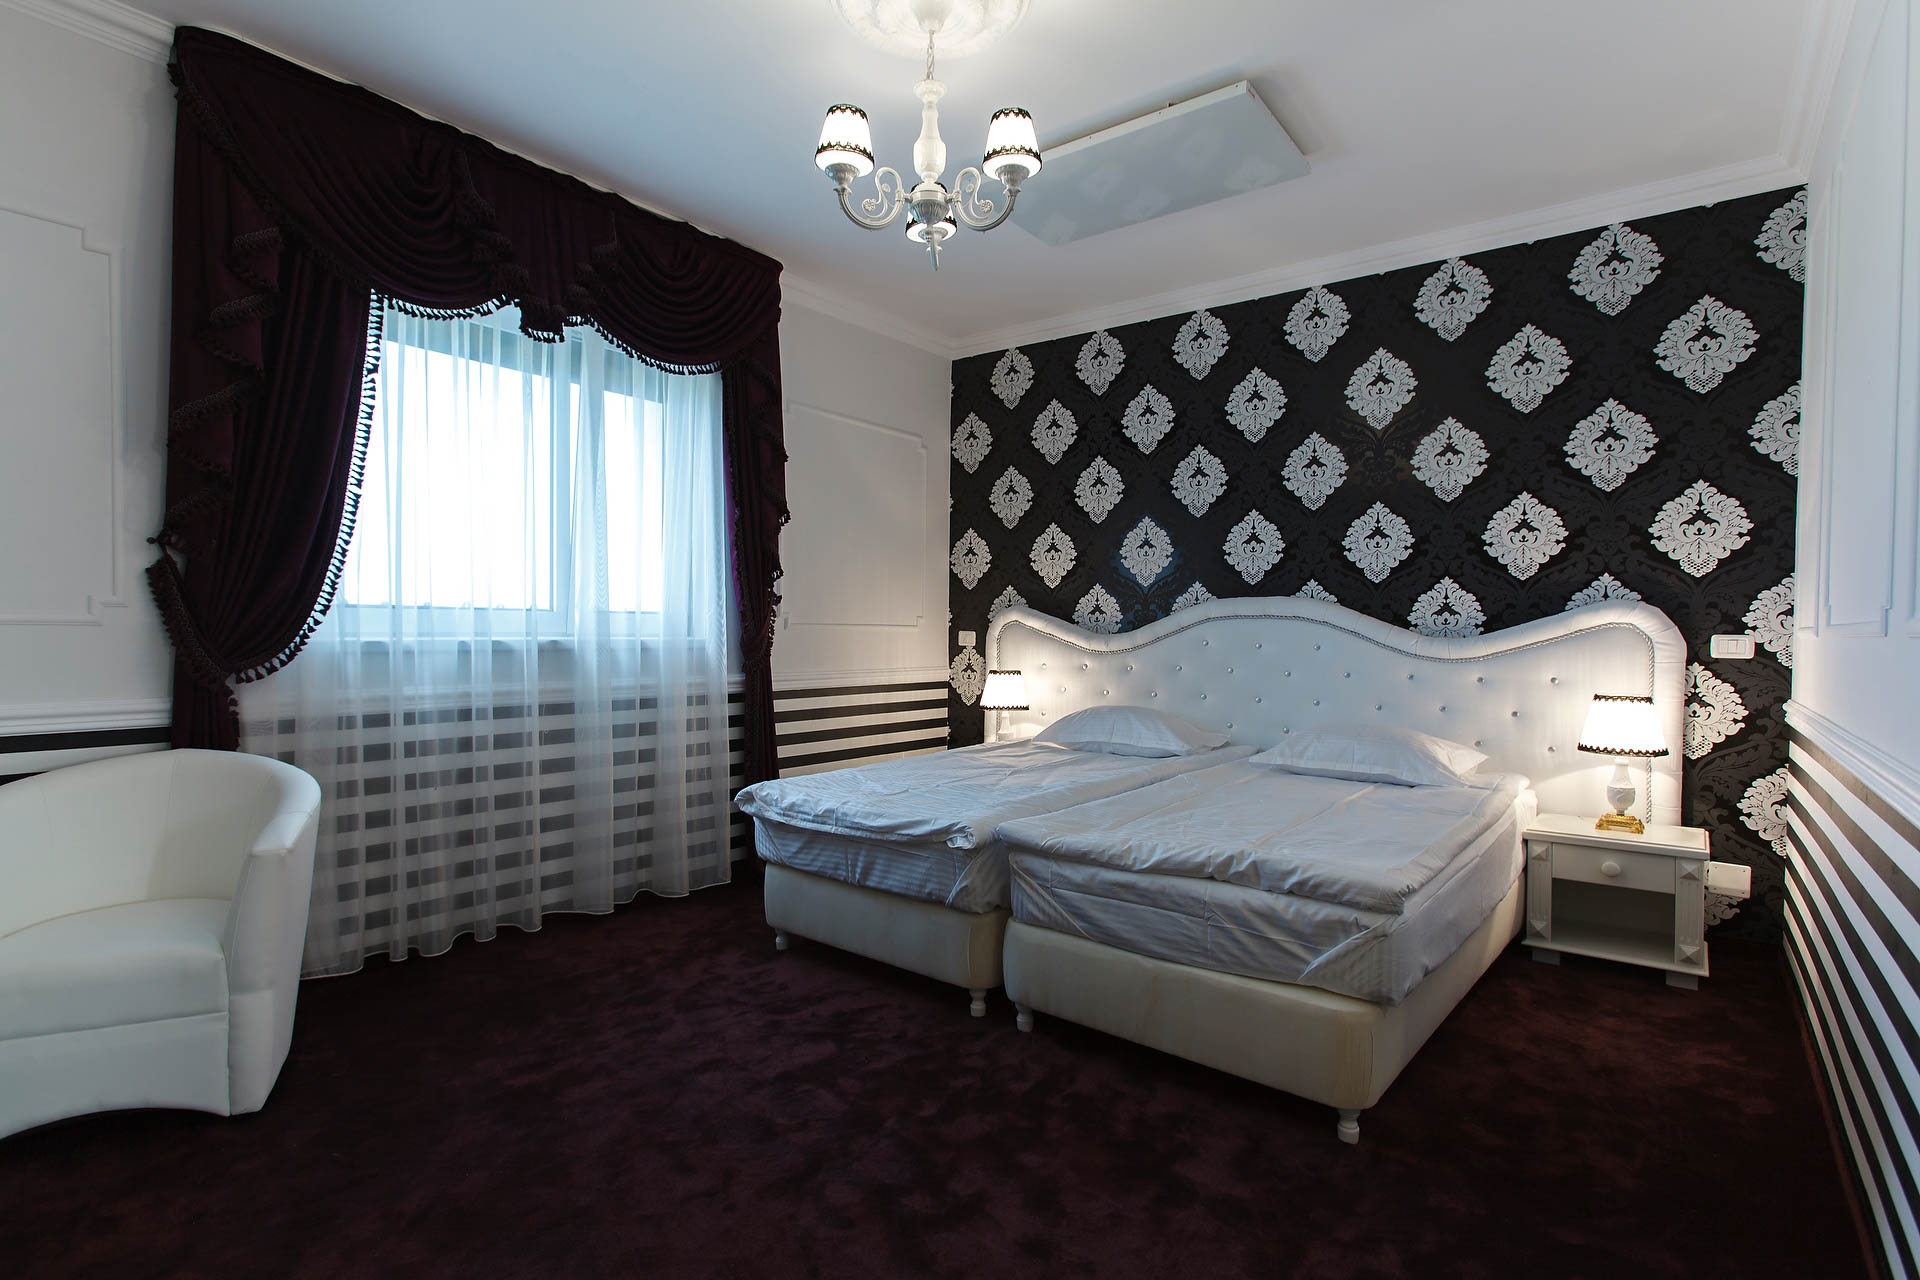 Accommodation Brasov - Standard Room